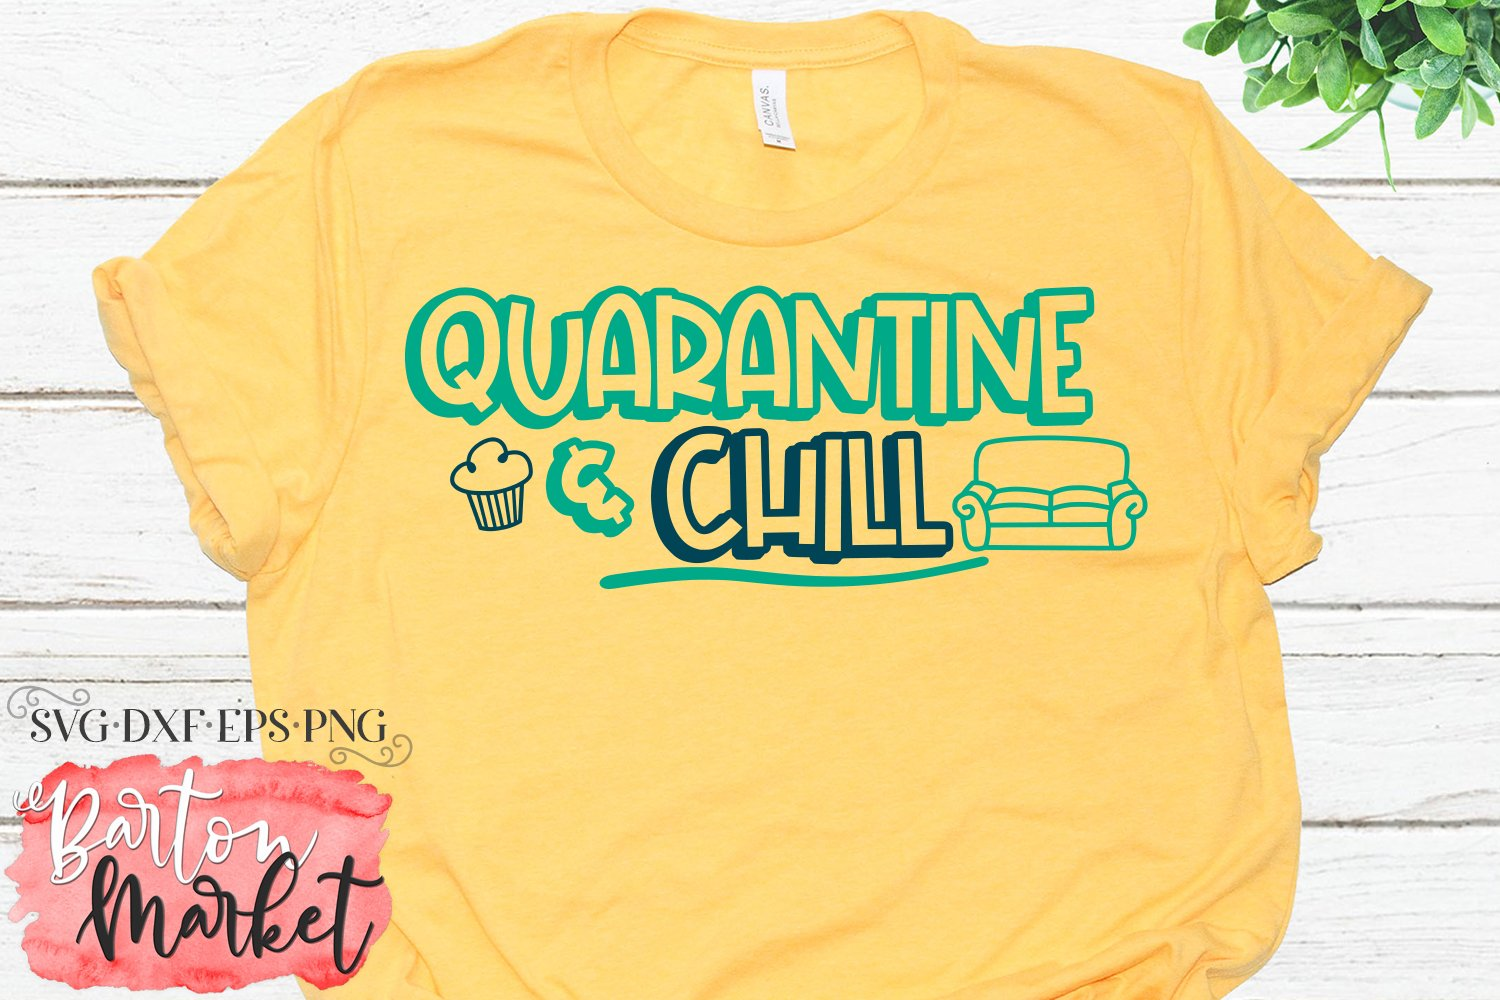 Quarantine & Chill SVG DXF EPS PNG example image 2